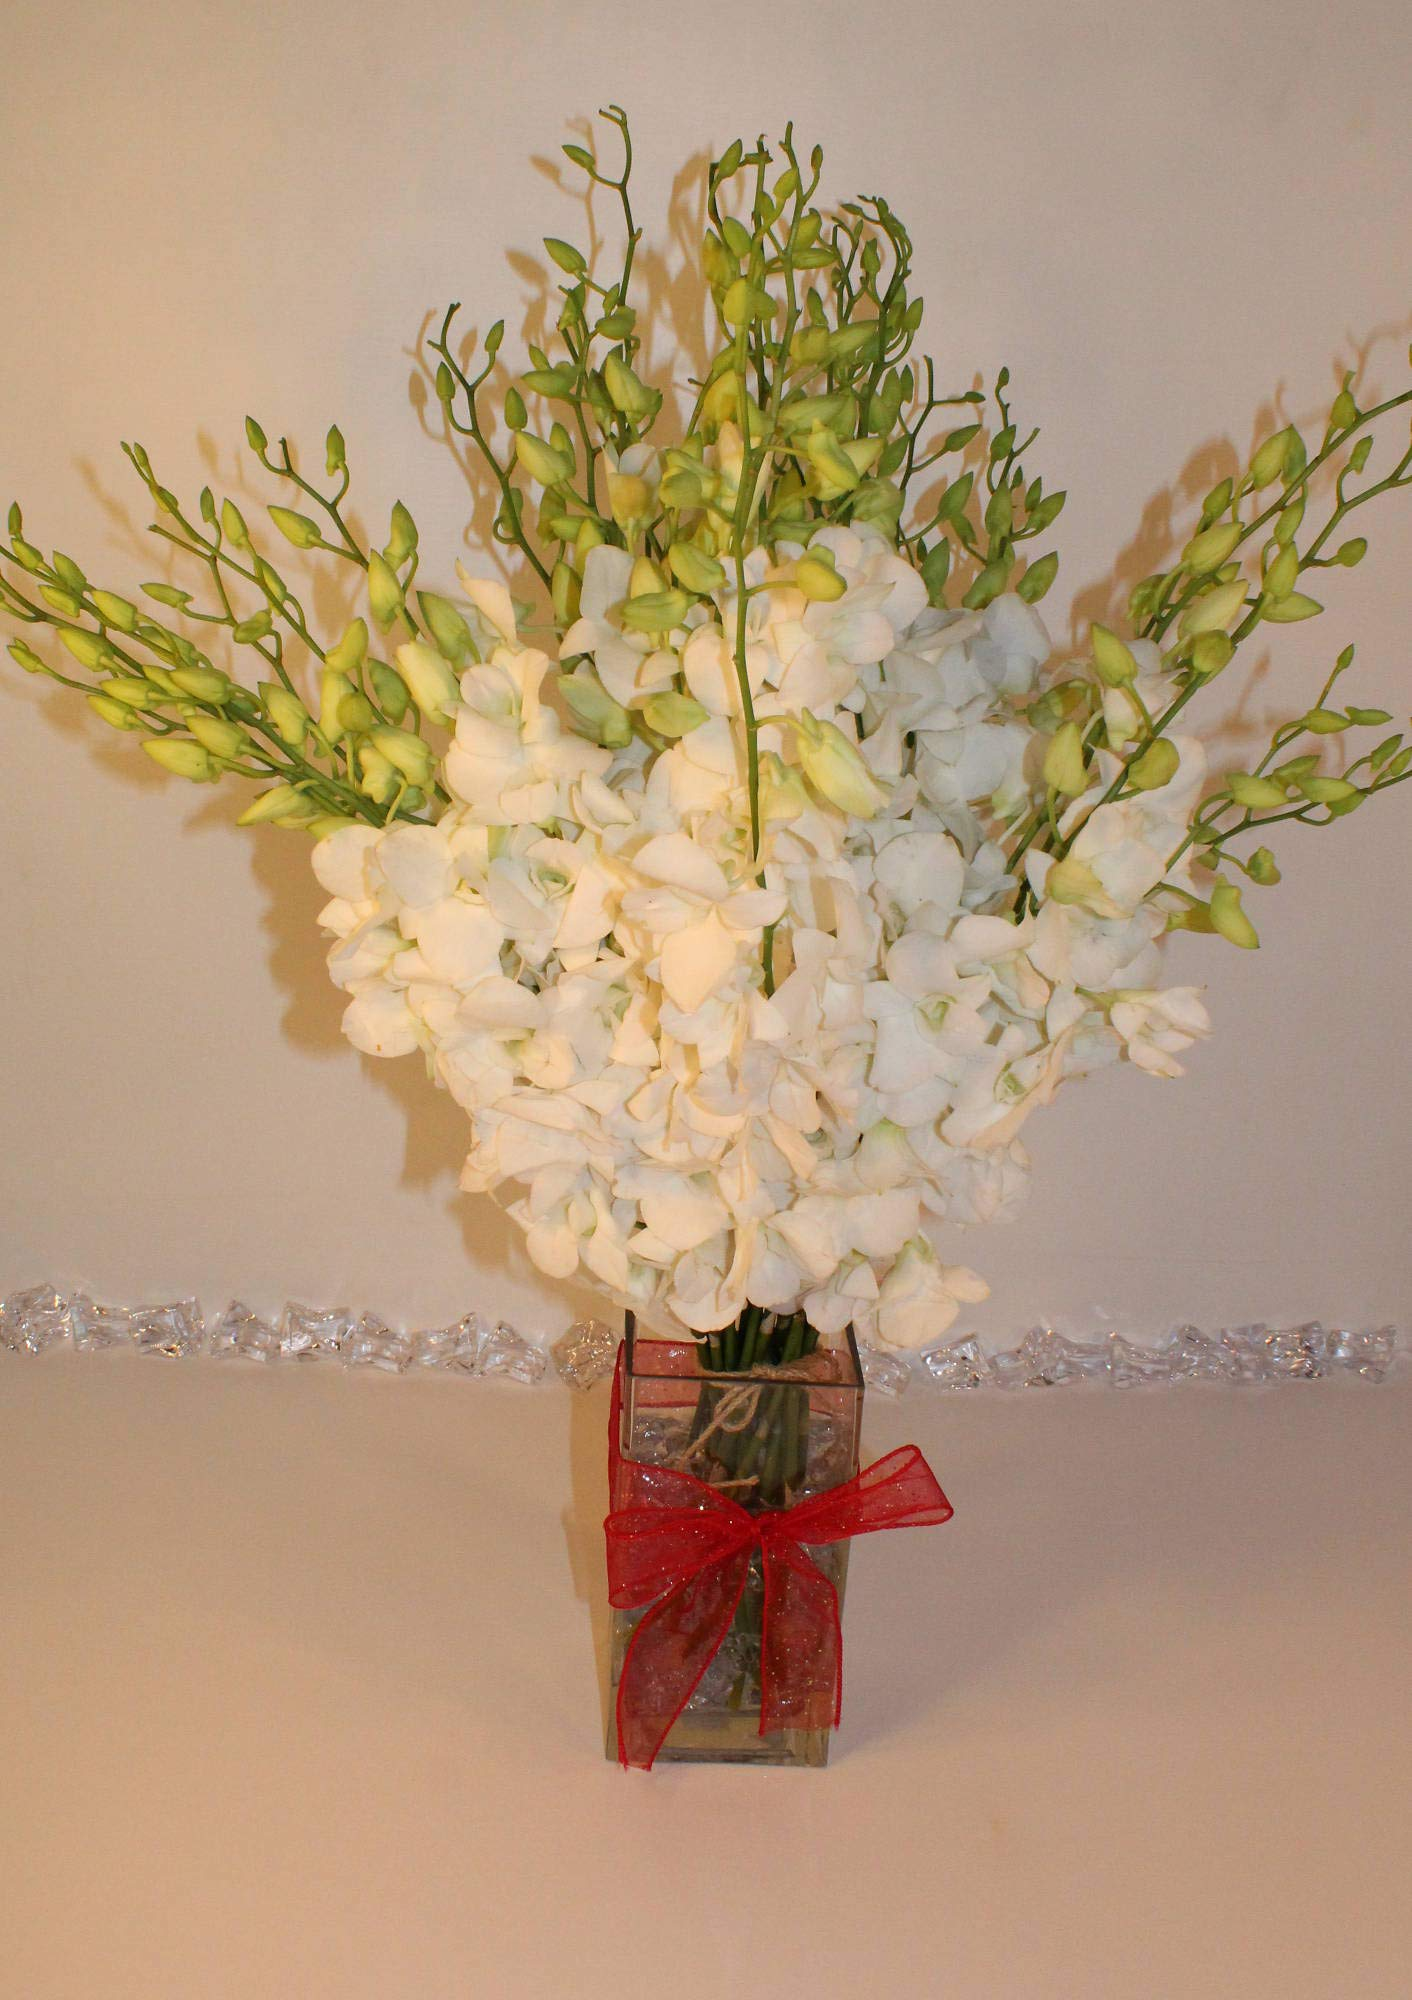 Athena's Garden Mother's Day Special Fresh Cut Snow White Orchid Bouquet for Love, 30 Stems with Glass Vase,